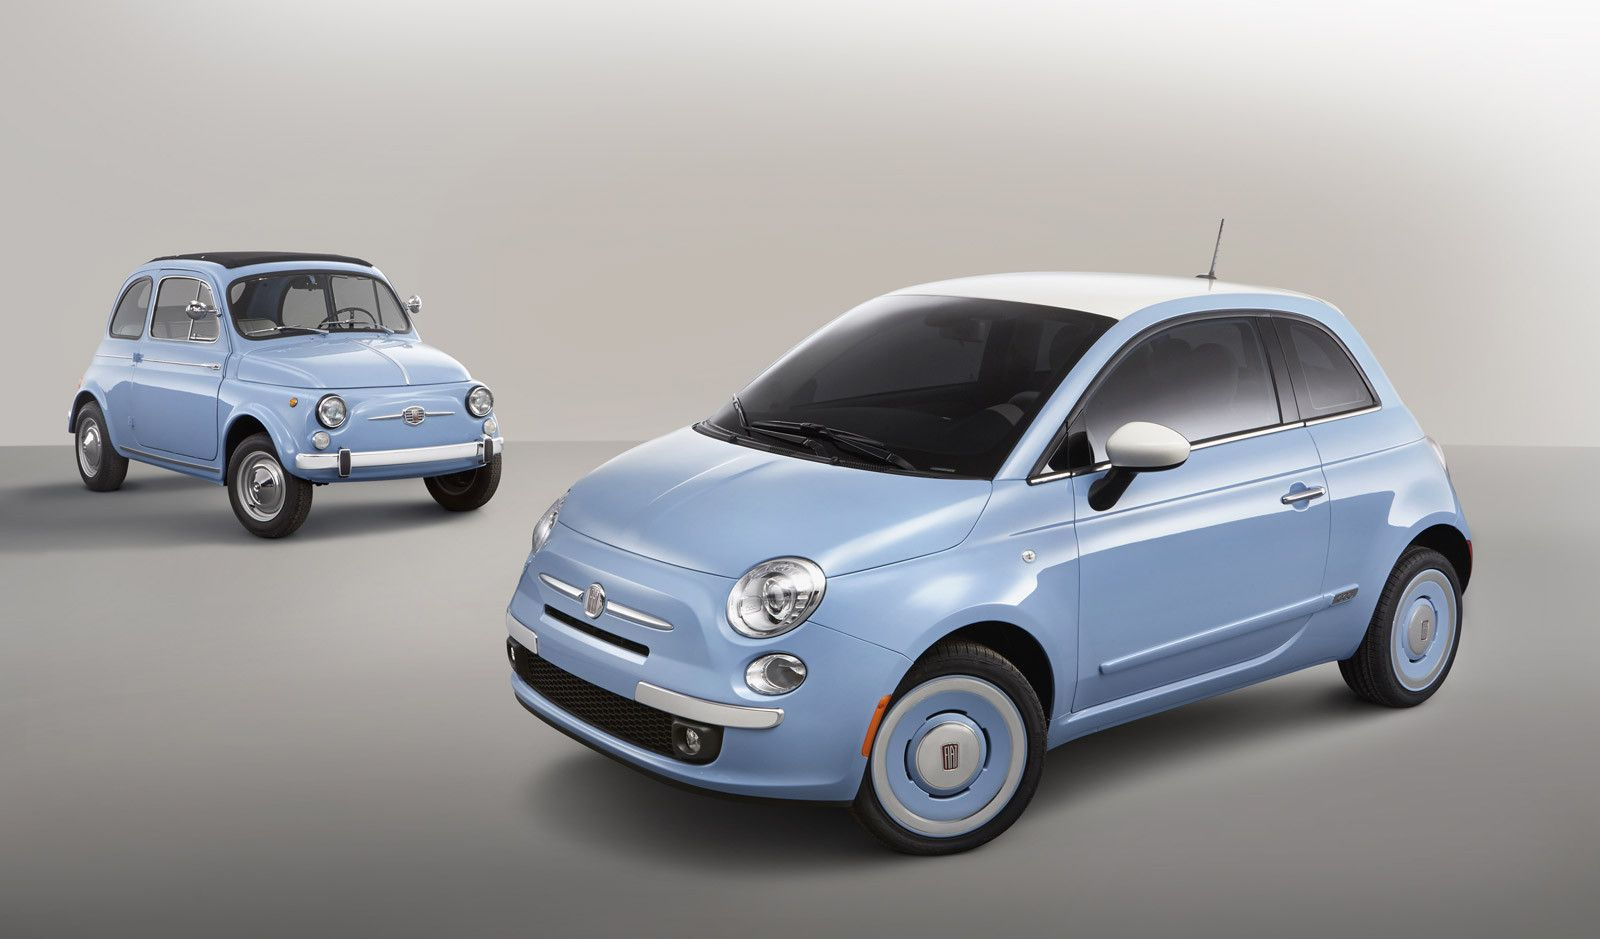 2015 Fiat 500 Review Changes MPG This particular little town